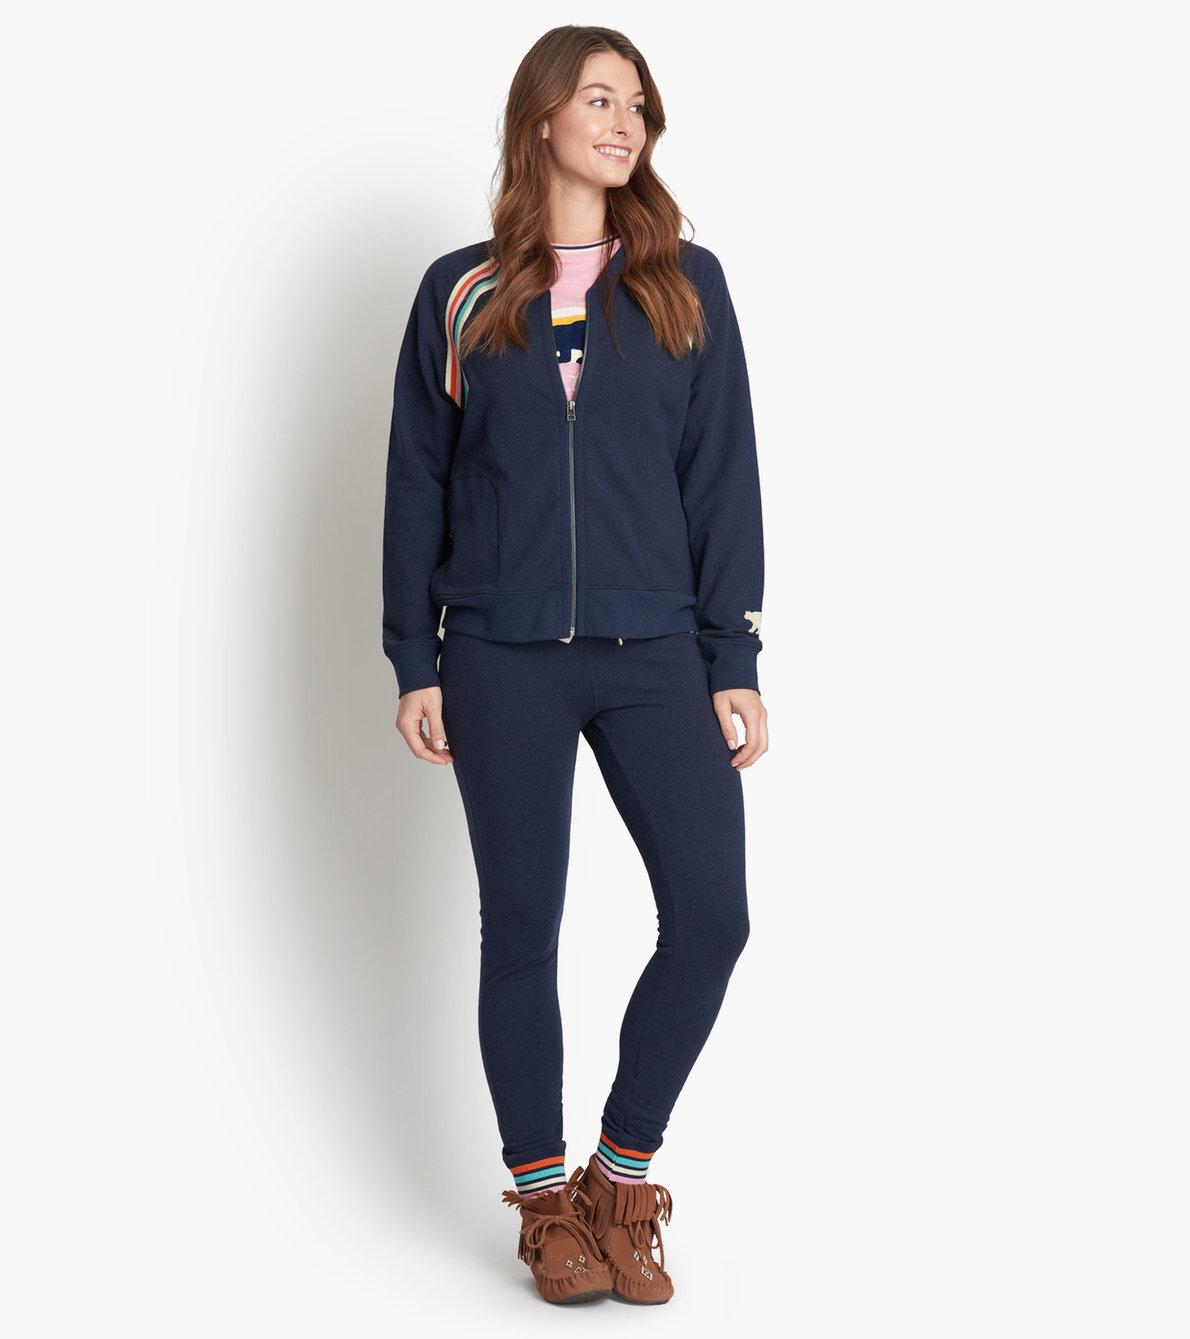 View larger image of Retro Bear Women's Heritage Track Jacket